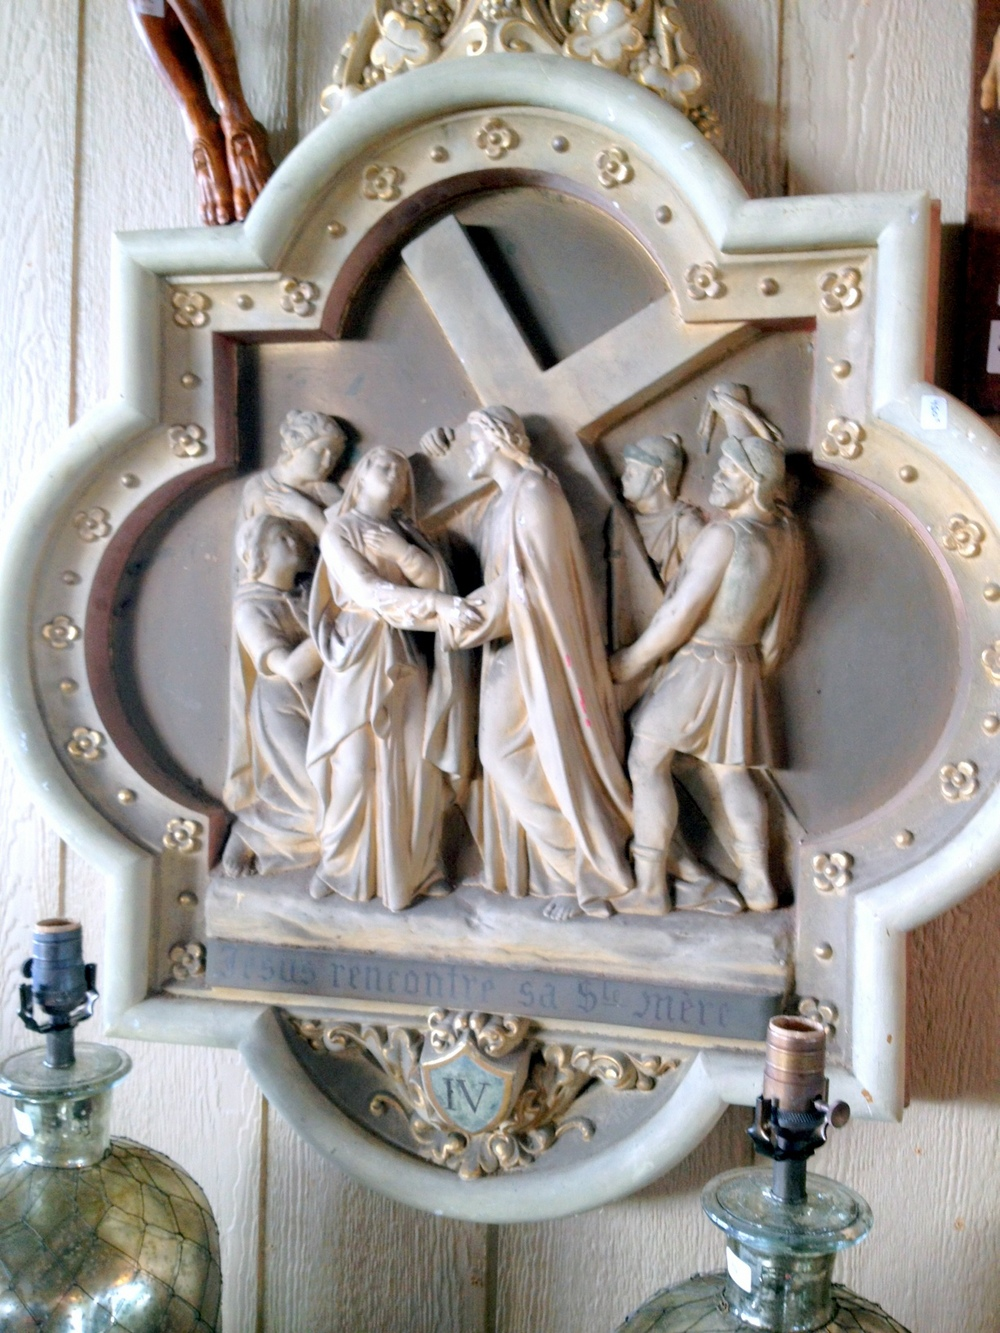 station of the cross.jpg